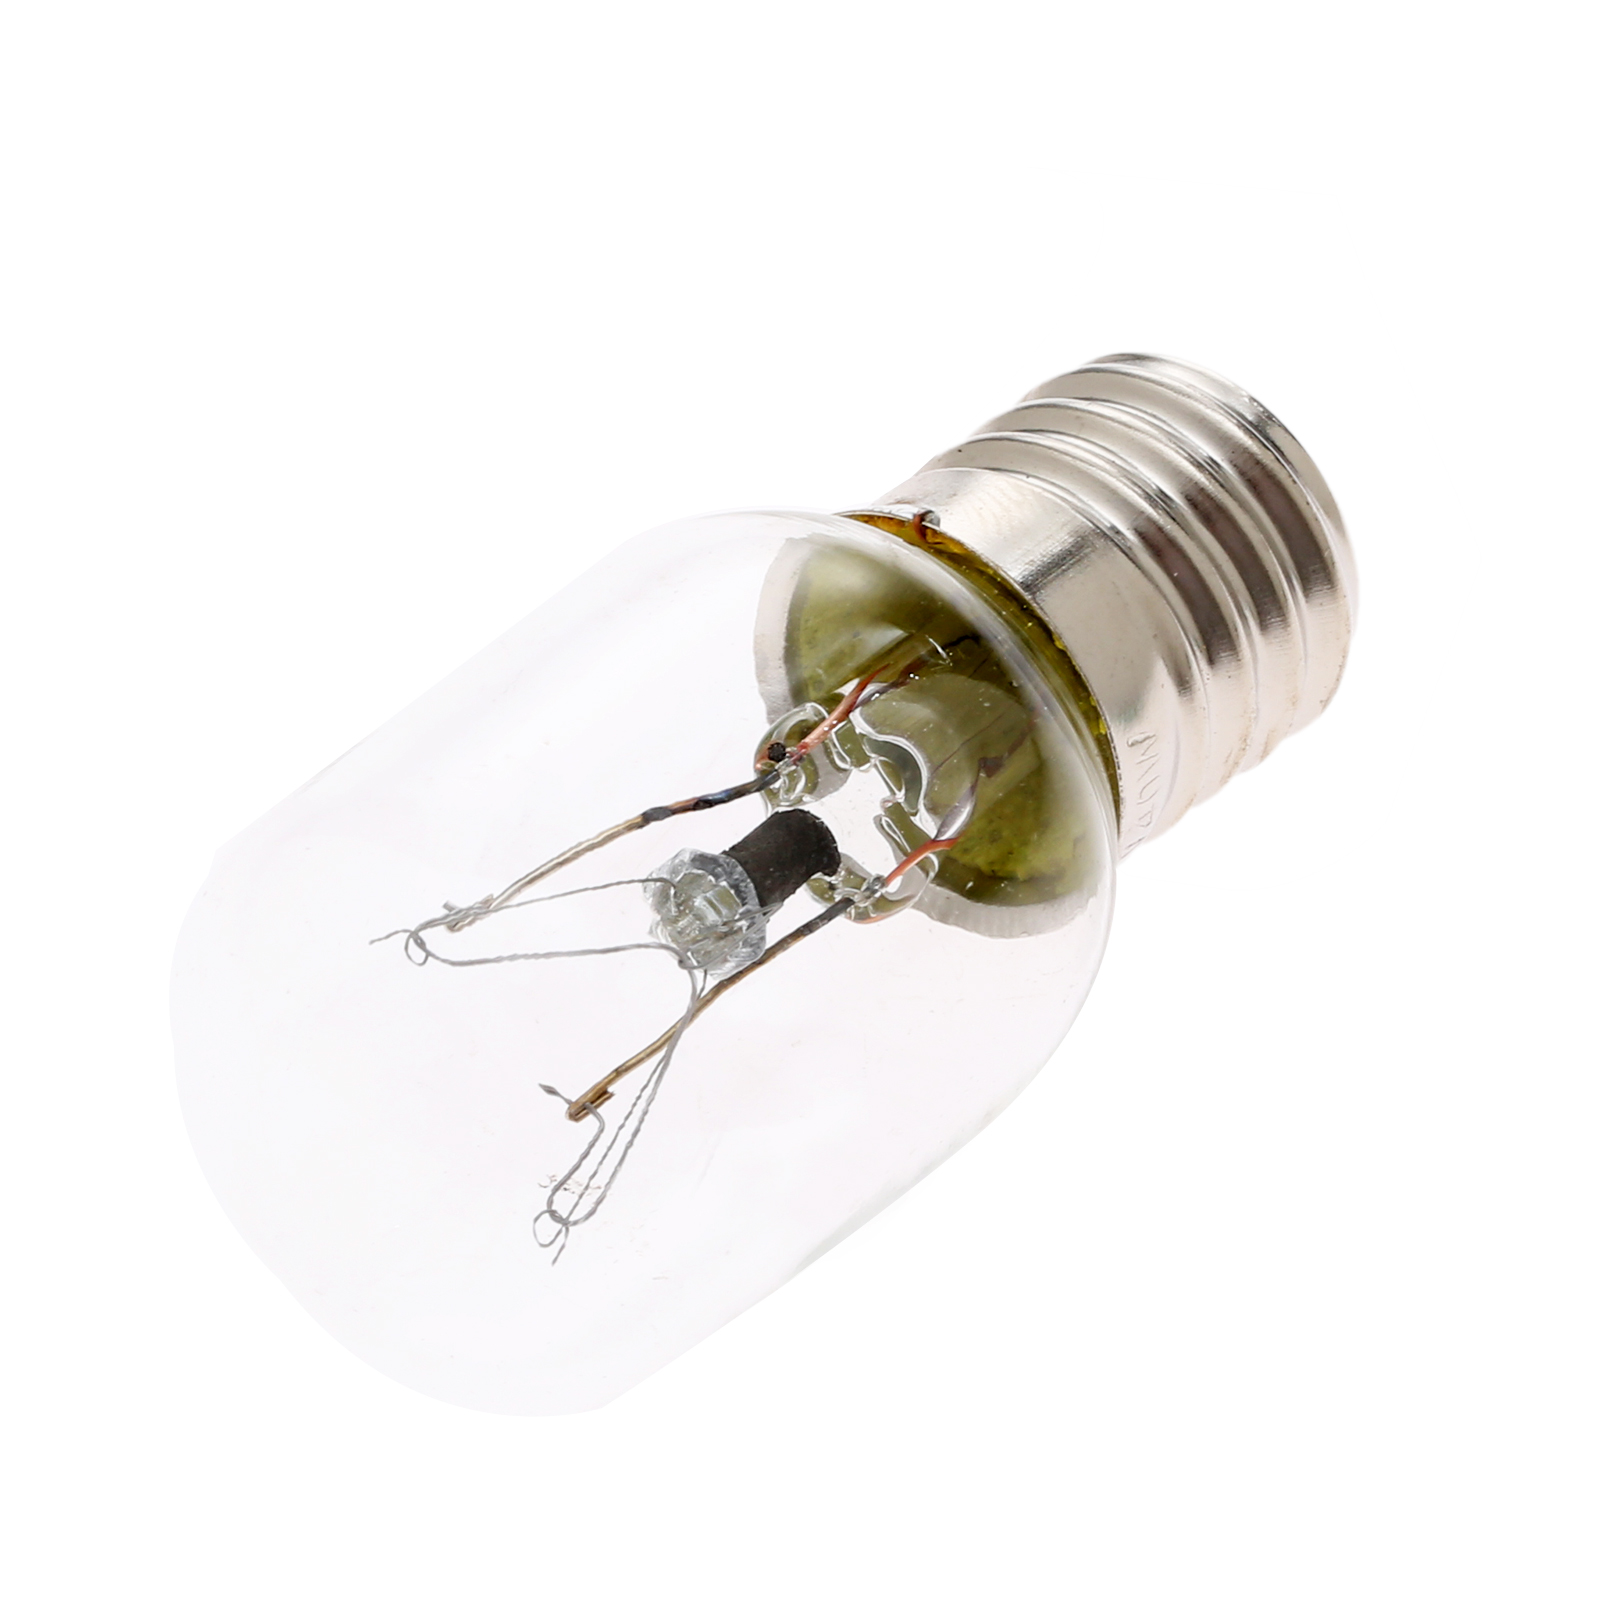 8206232A Microwave Oven Light Bulb Fit For  Whirlpool Maytag 1890433 8206232